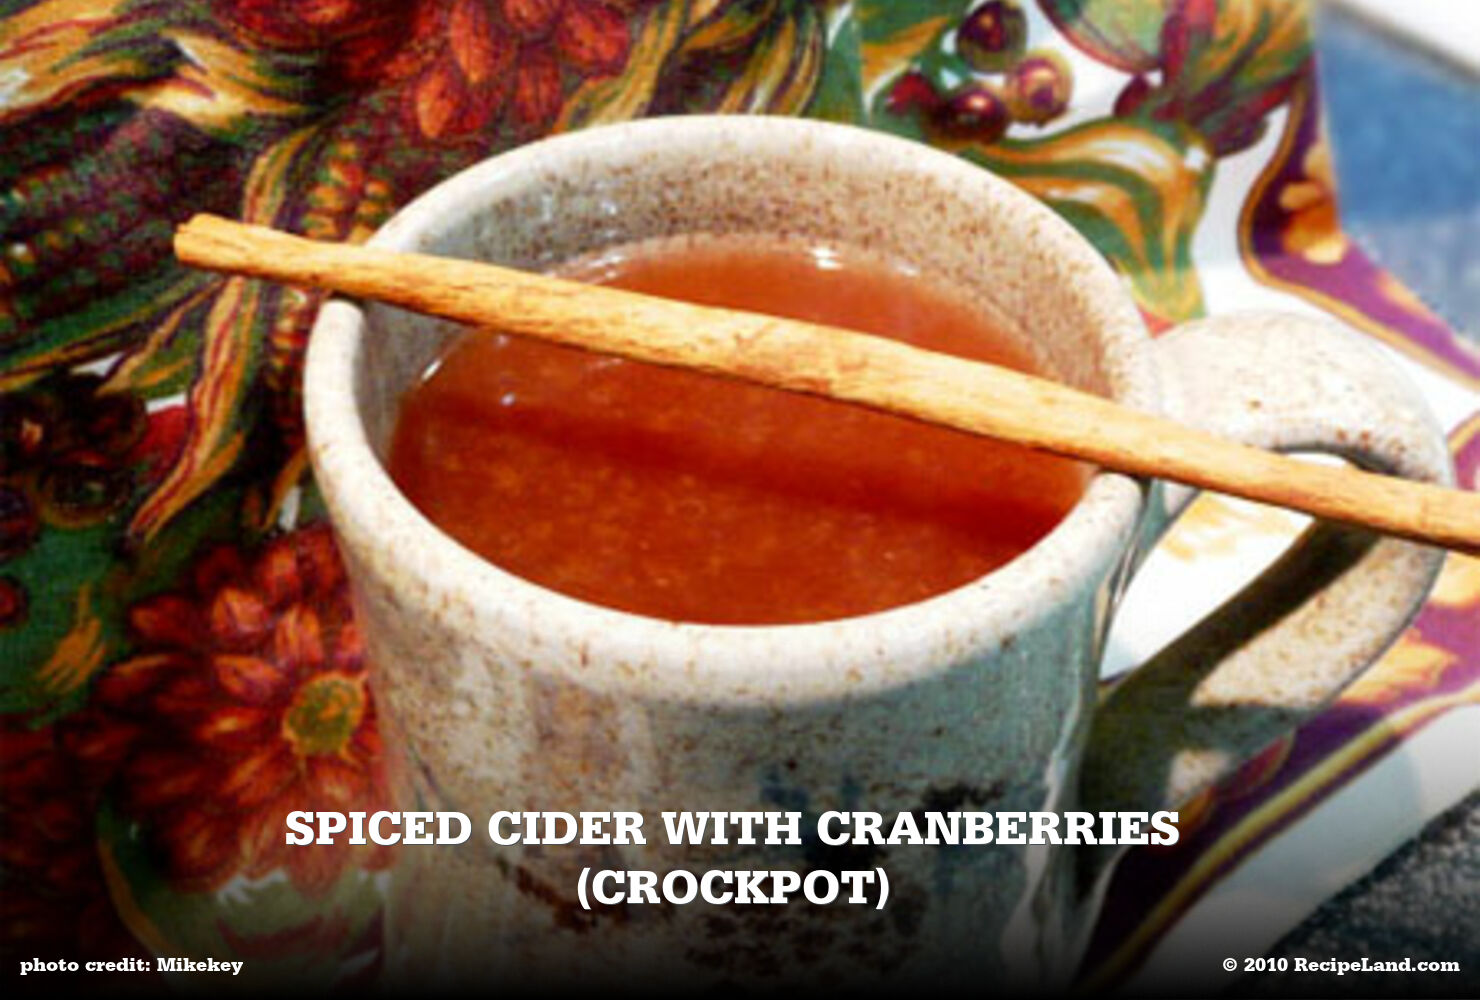 Spiced Cider with Cranberries (crockpot)